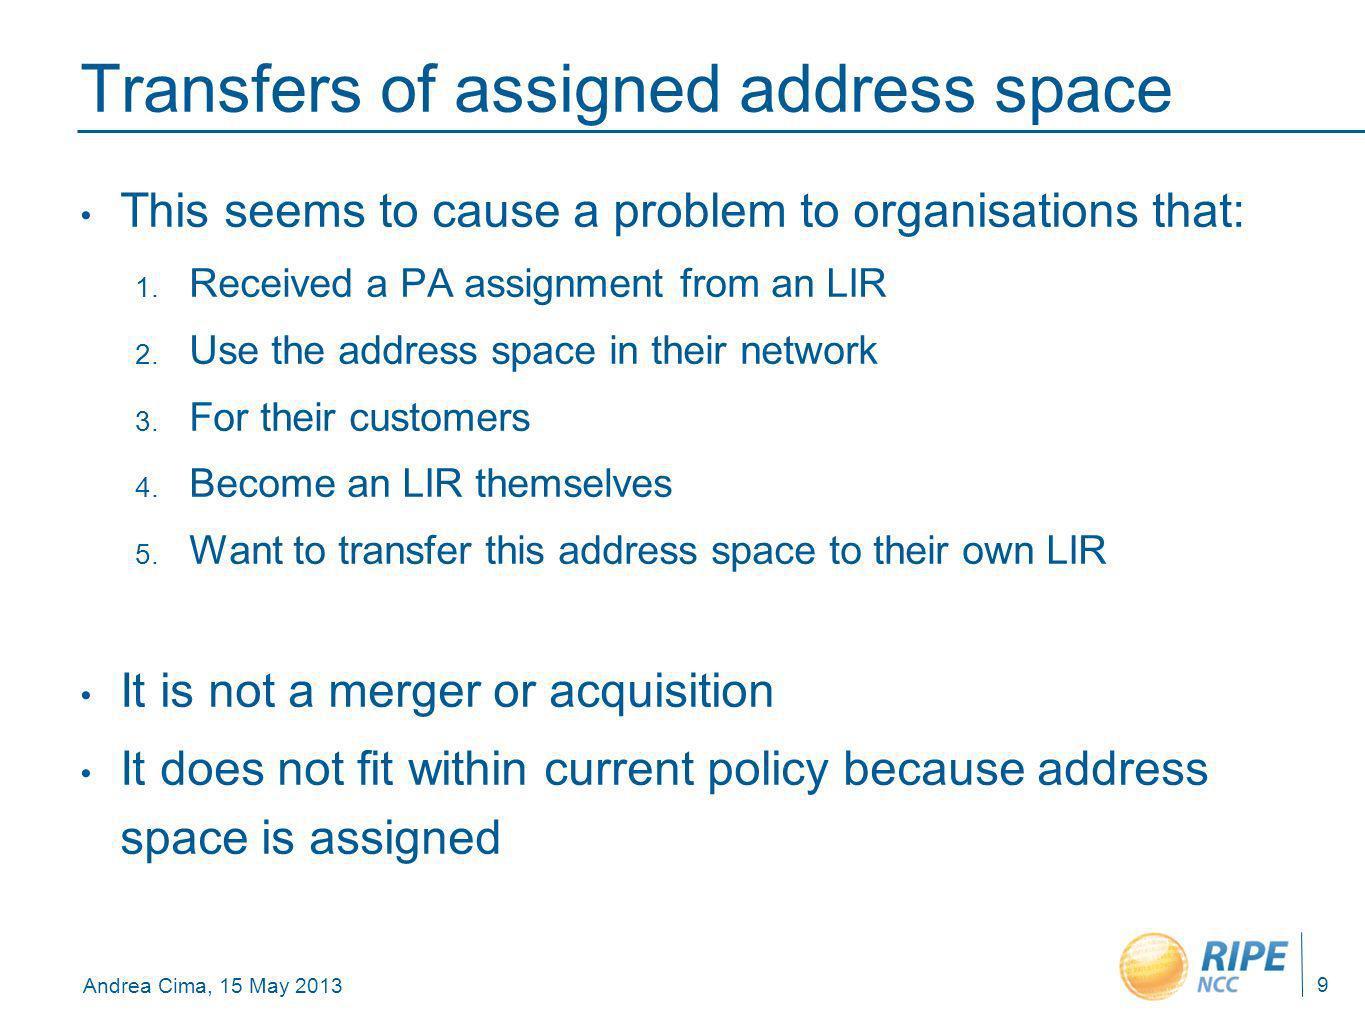 Andrea Cima, 15 May 2013 Transfers of assigned address space This seems to cause a problem to organisations that: 1.